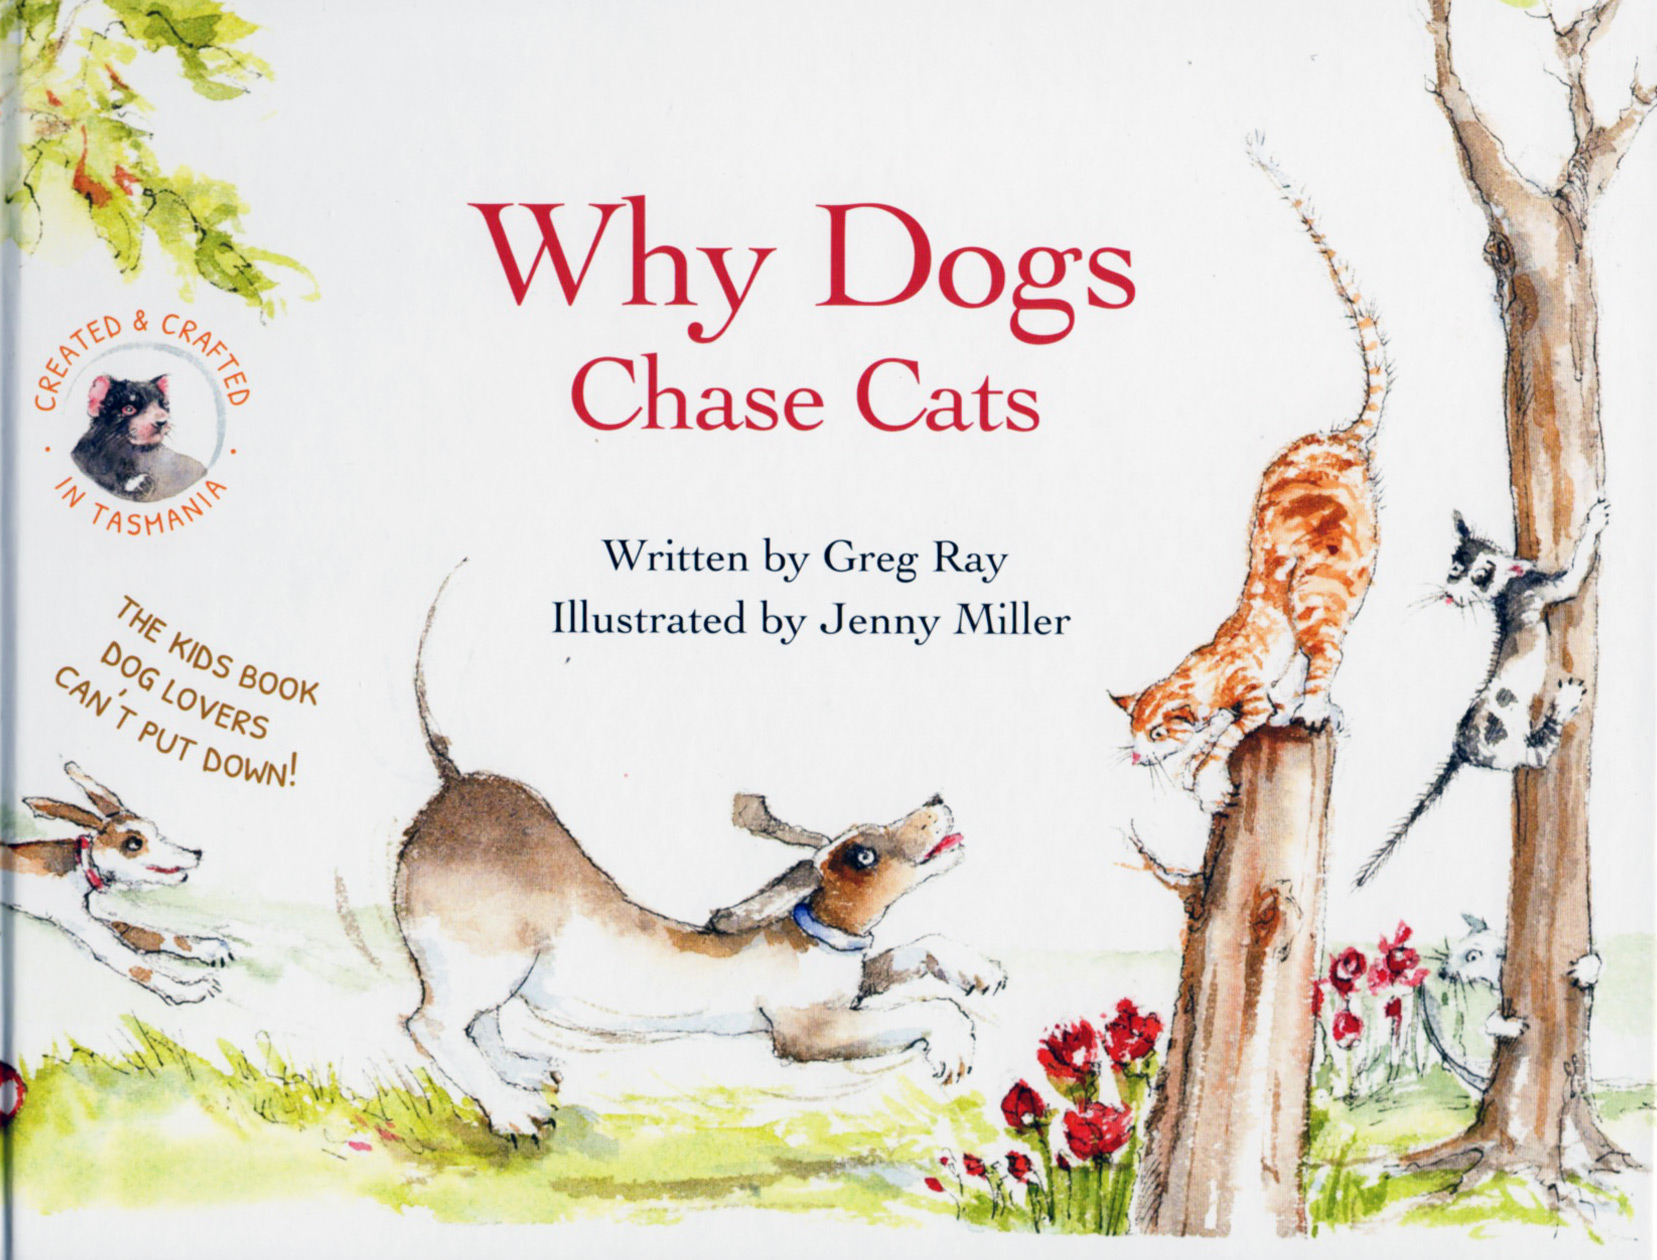 Why Dogs Chase Cats